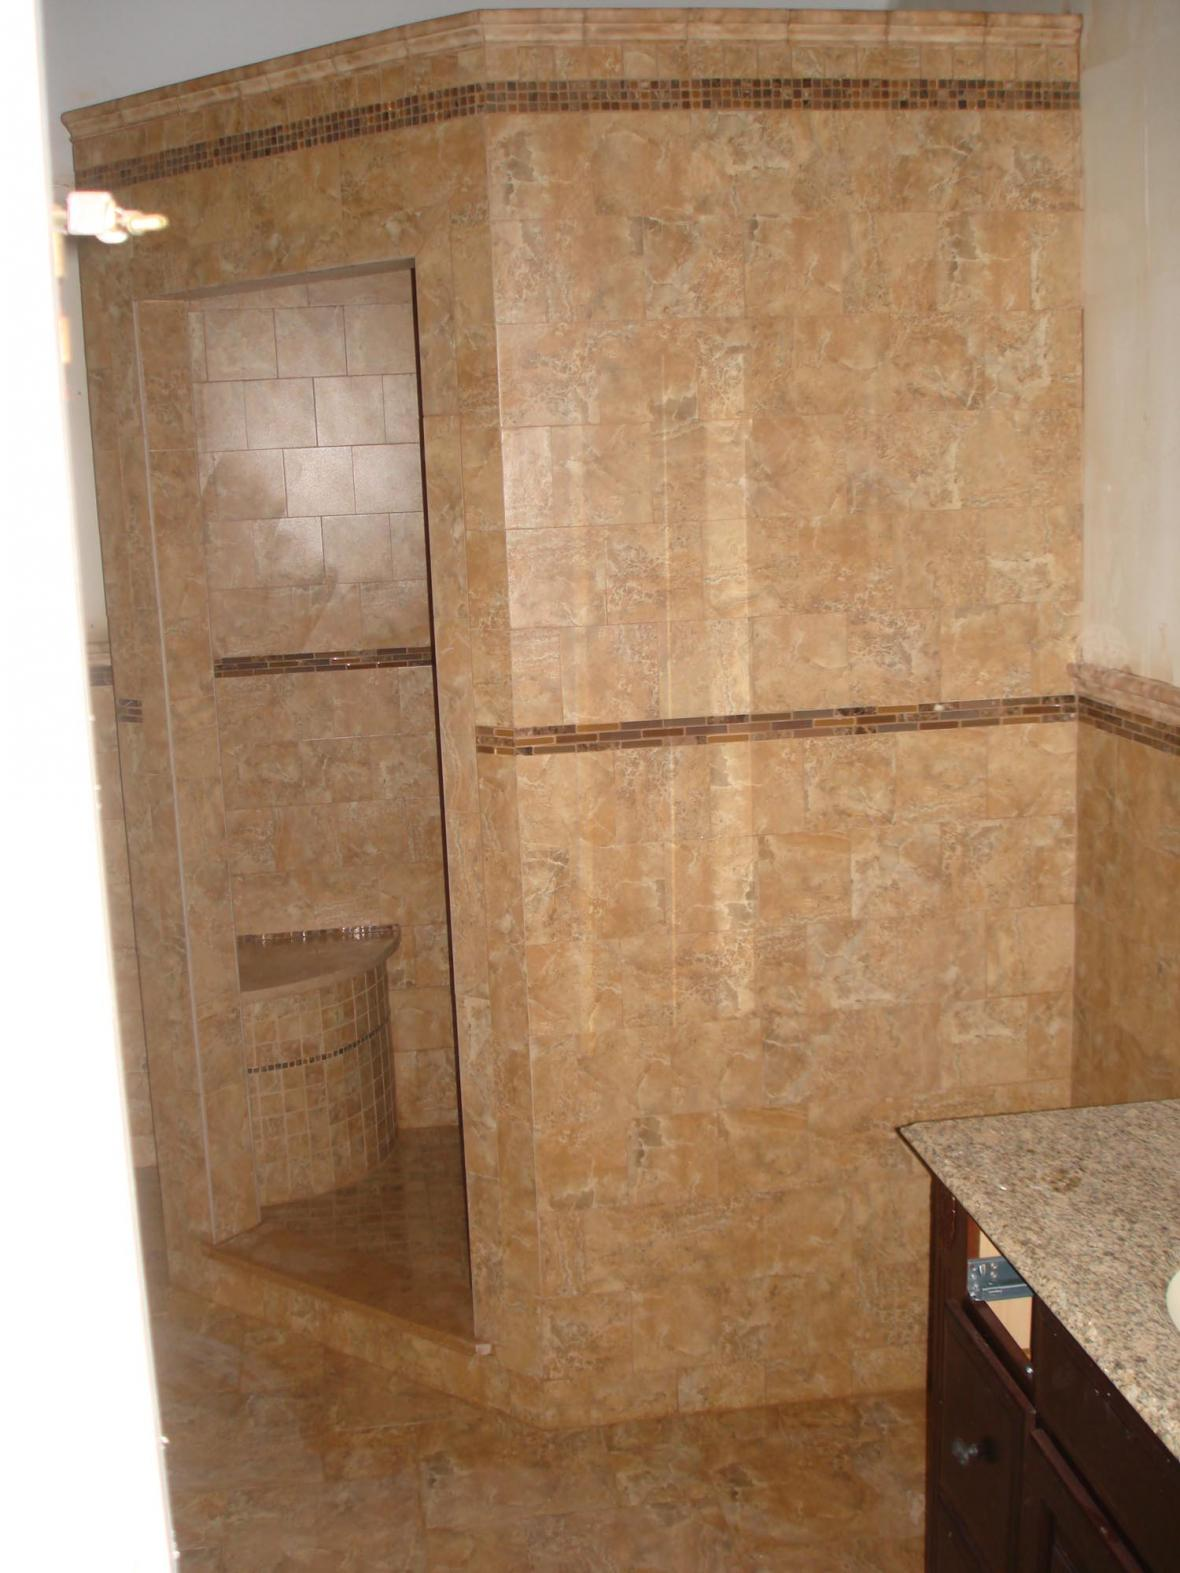 Bathroom Shower with Tile